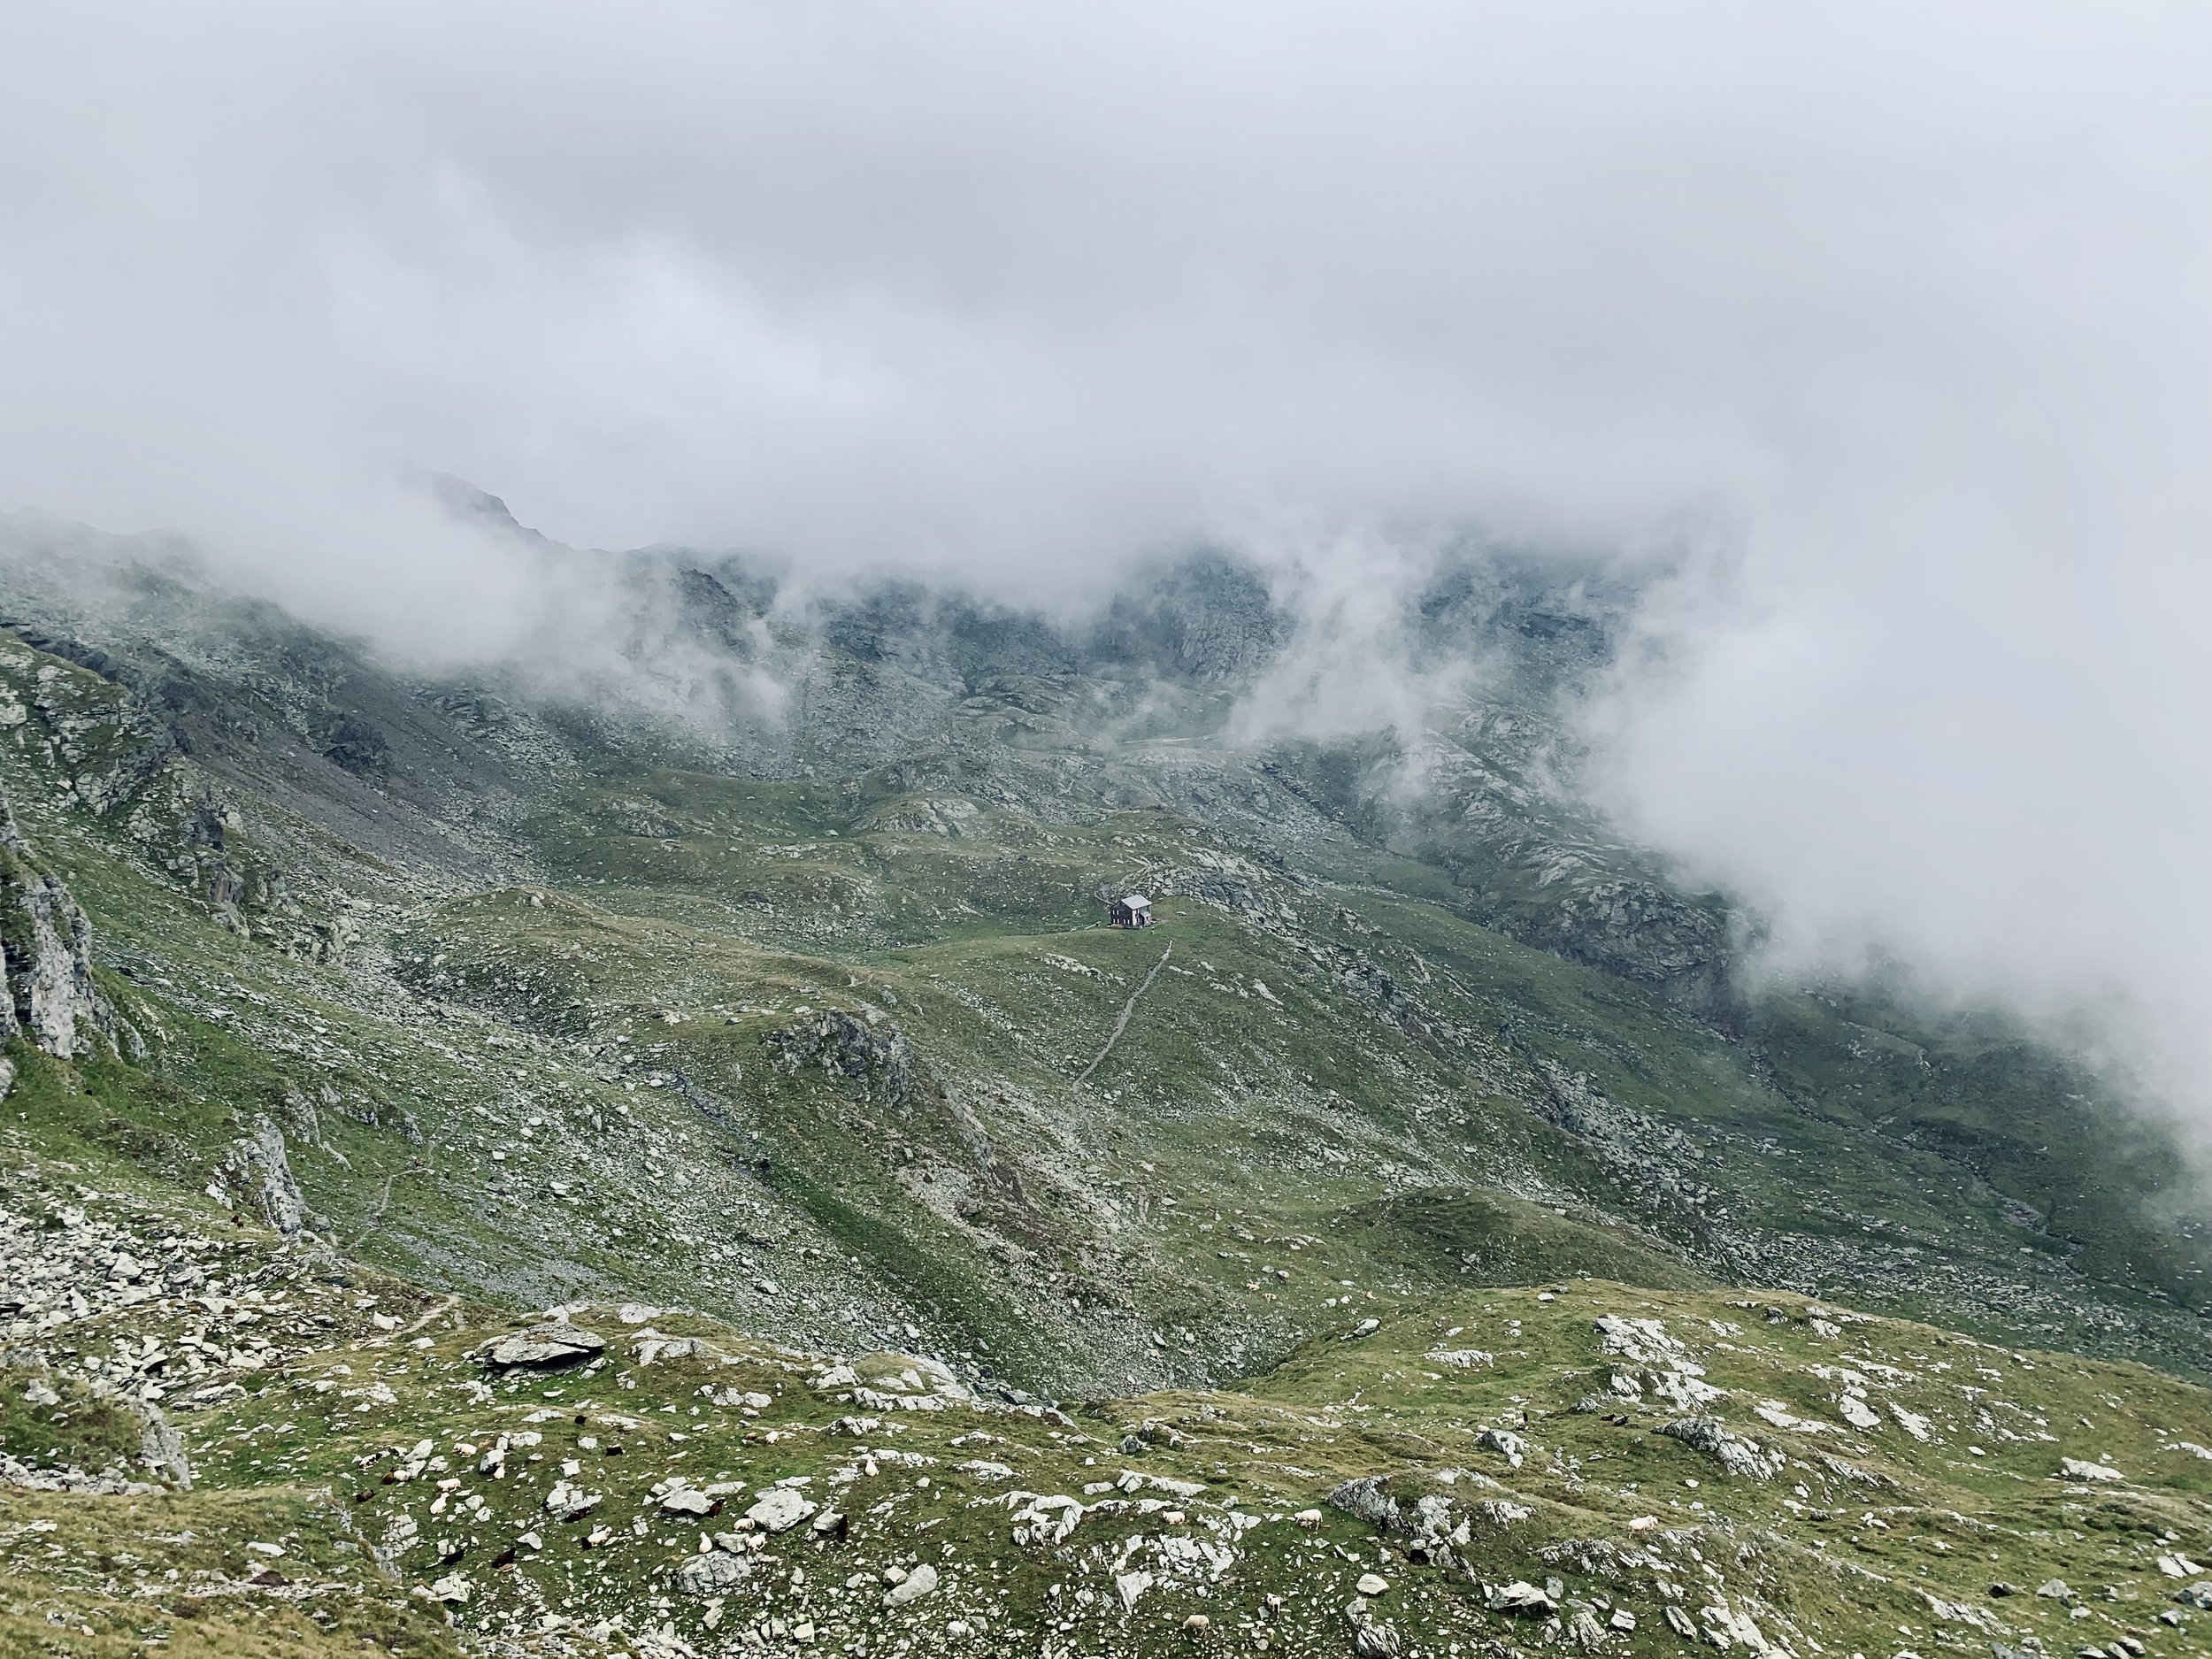 Just before Hugo-Gerbers-Hütte (the small thing in the middle of the picture)